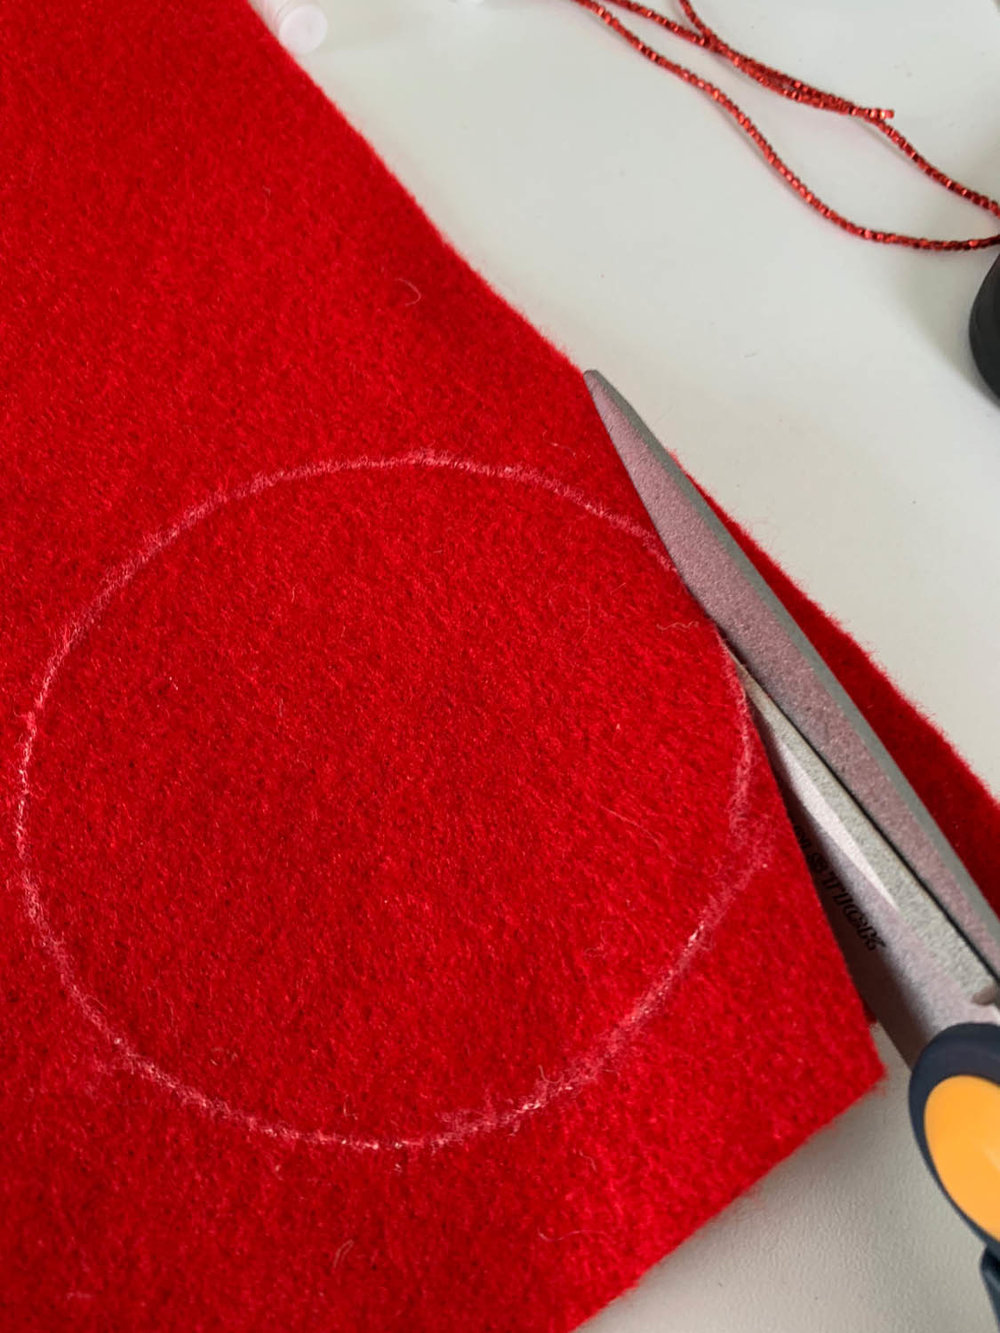 scissors cutting out traced circle shape on red felt